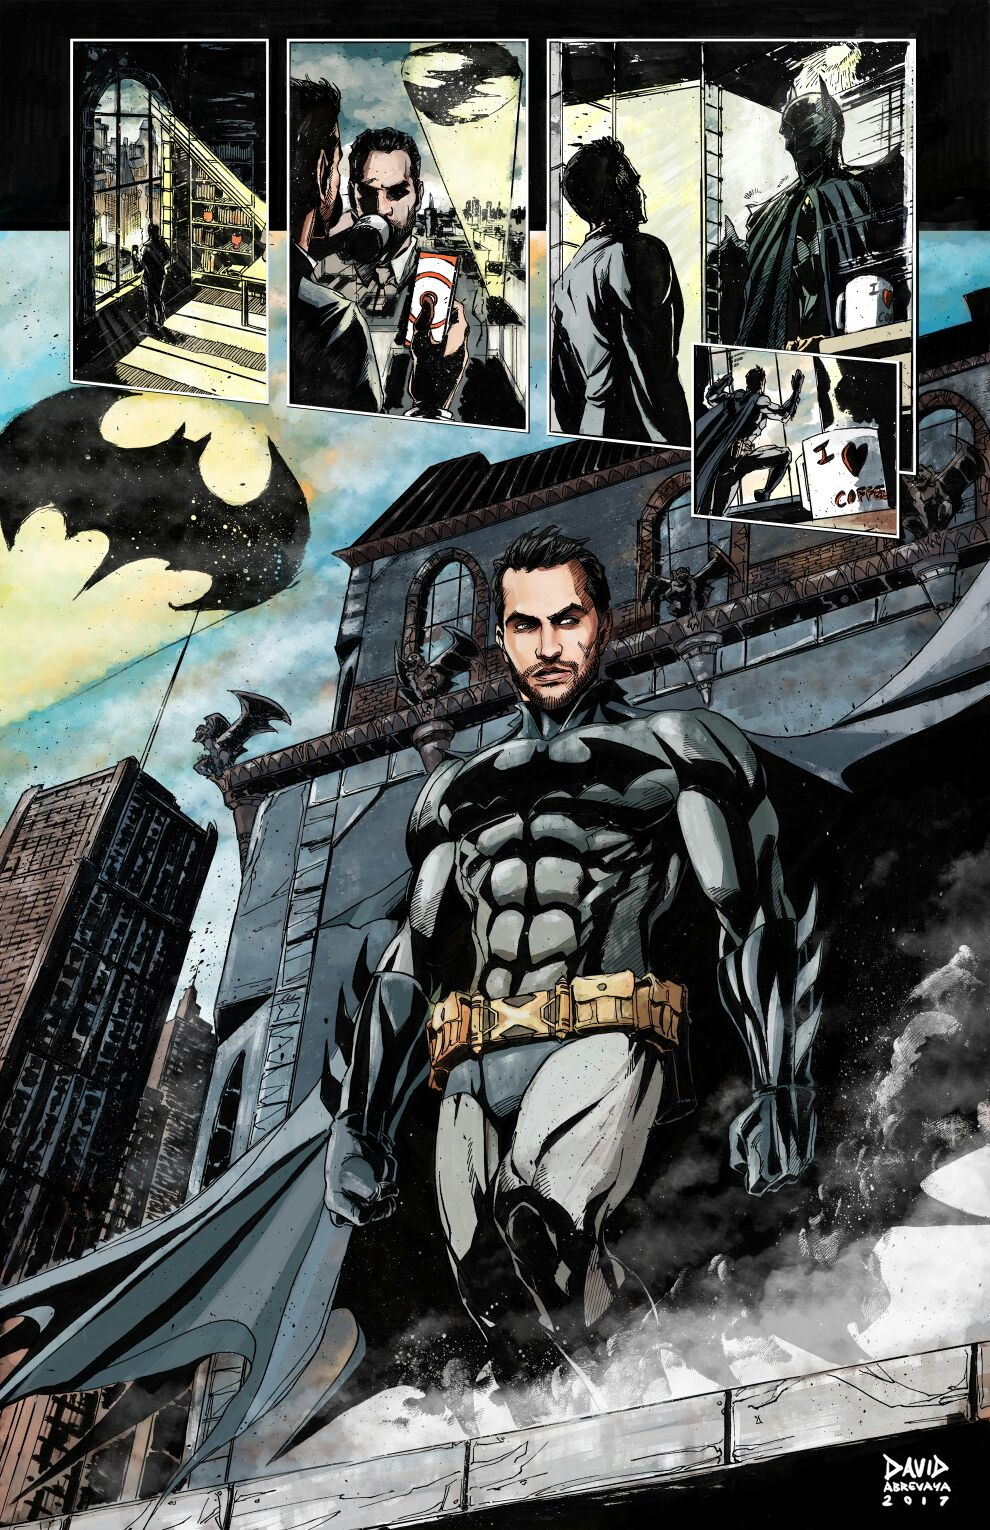 Yeah, that's me as Batman. Check out David's other work here, he's amazing.